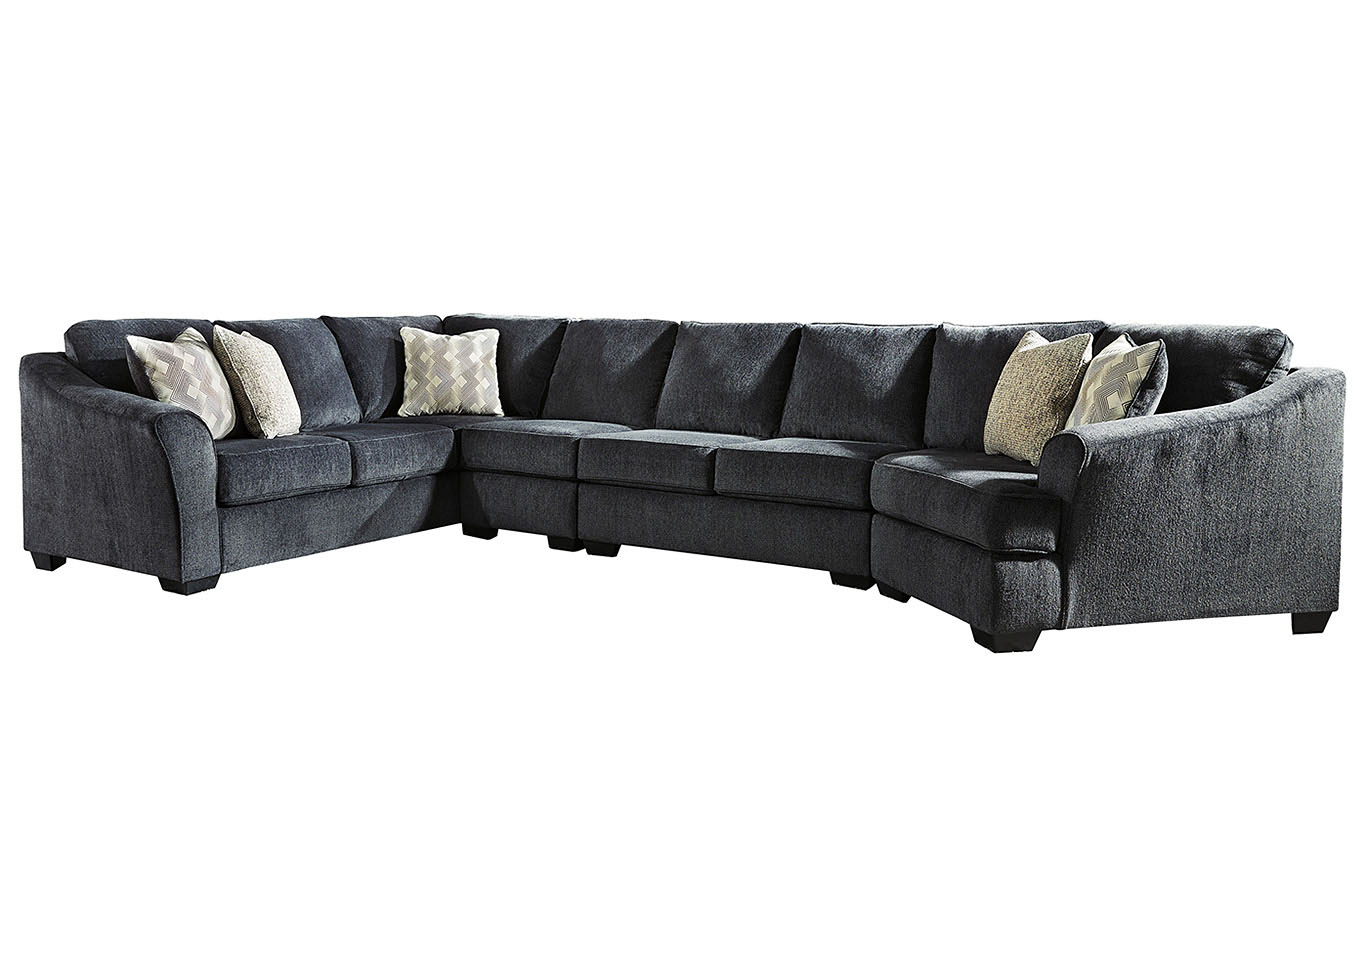 Eltmann Slate RAF Extended Sofa Sectional,Signature Design By Ashley